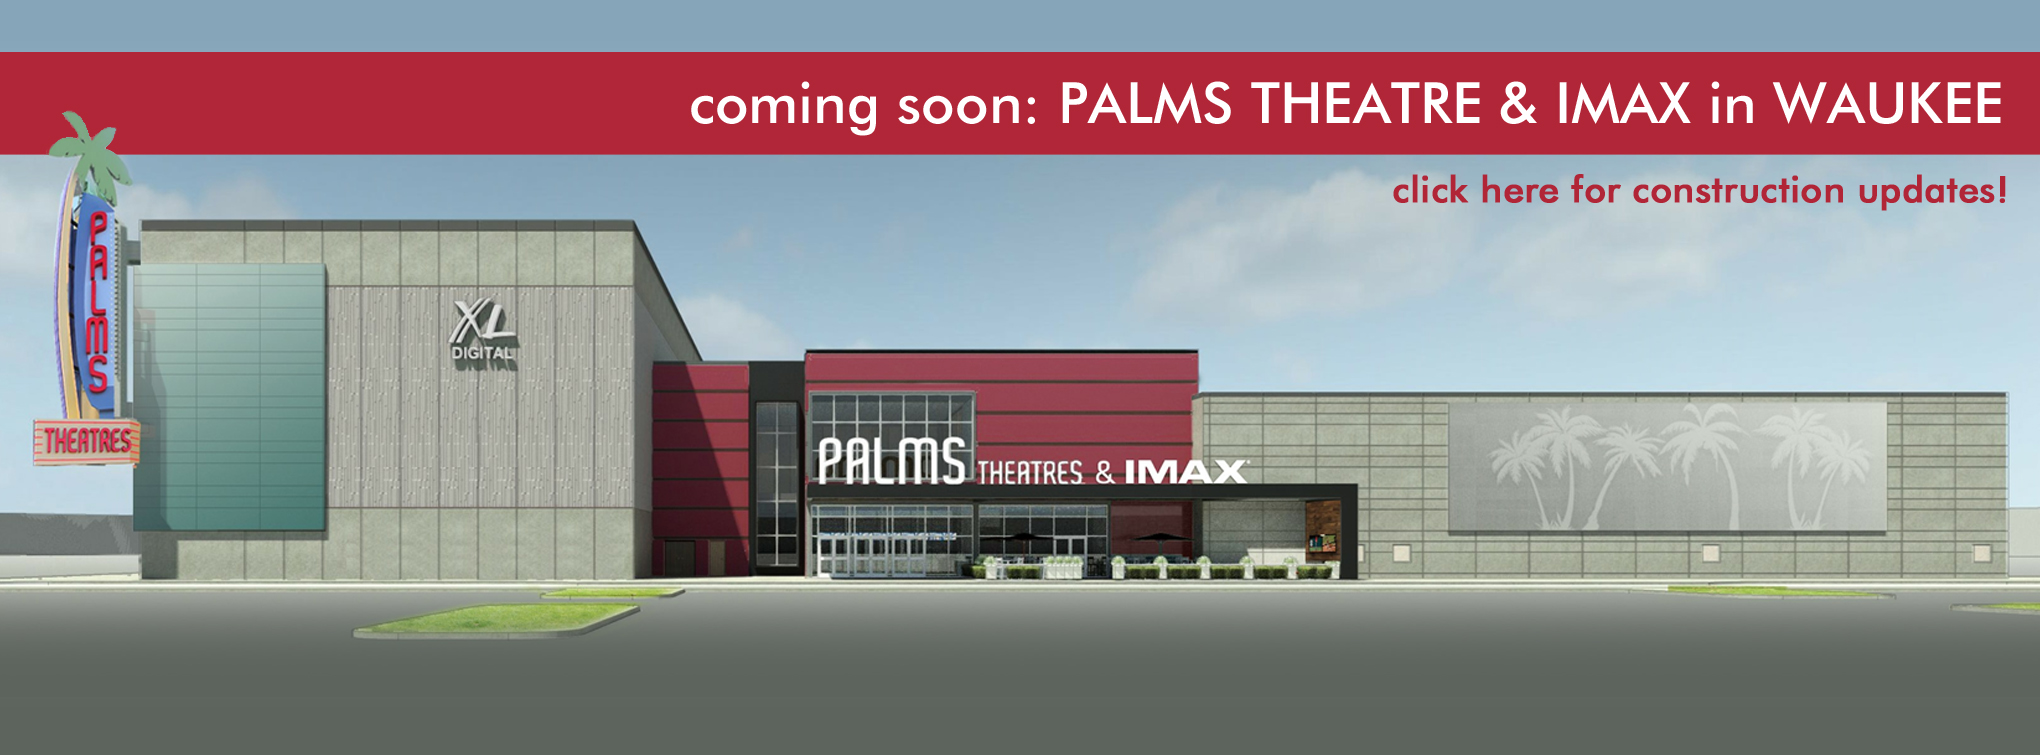 Slider image for Palms Theatre & IMAX rendering in Waukee